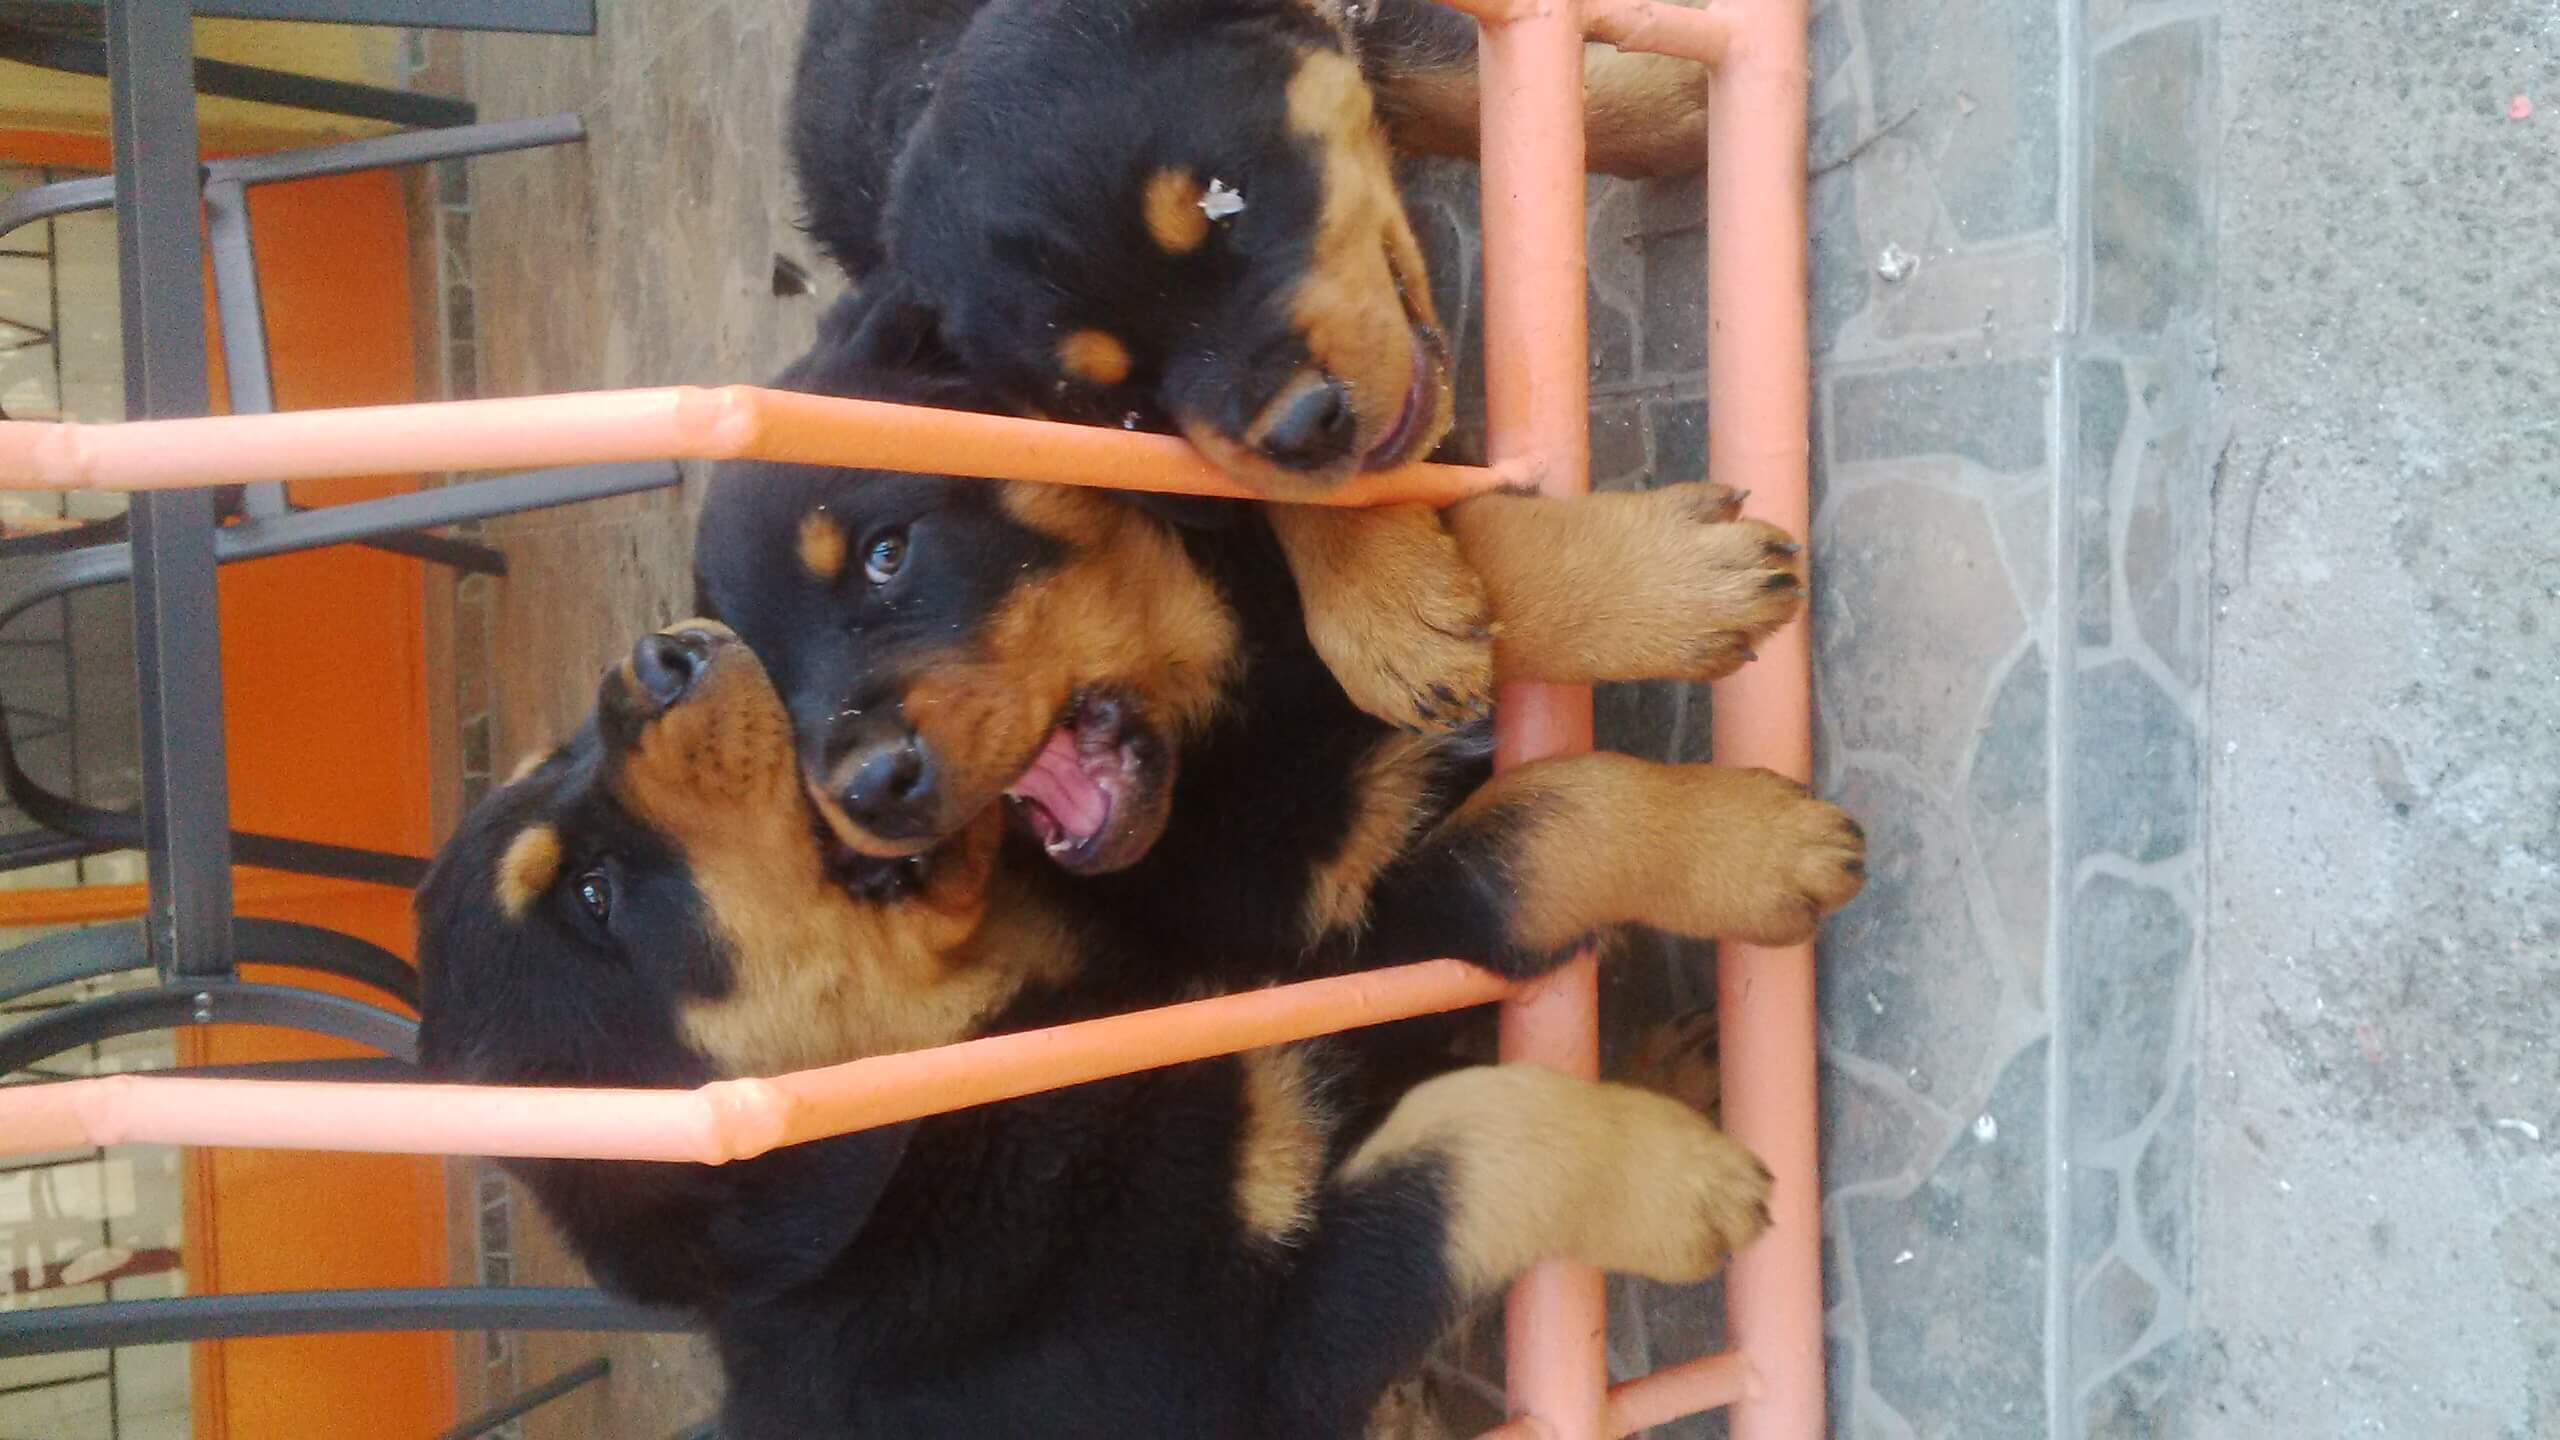 Rottweiler Puppies for Sale in Johannesburg by Oupa Mokgotsi Masike